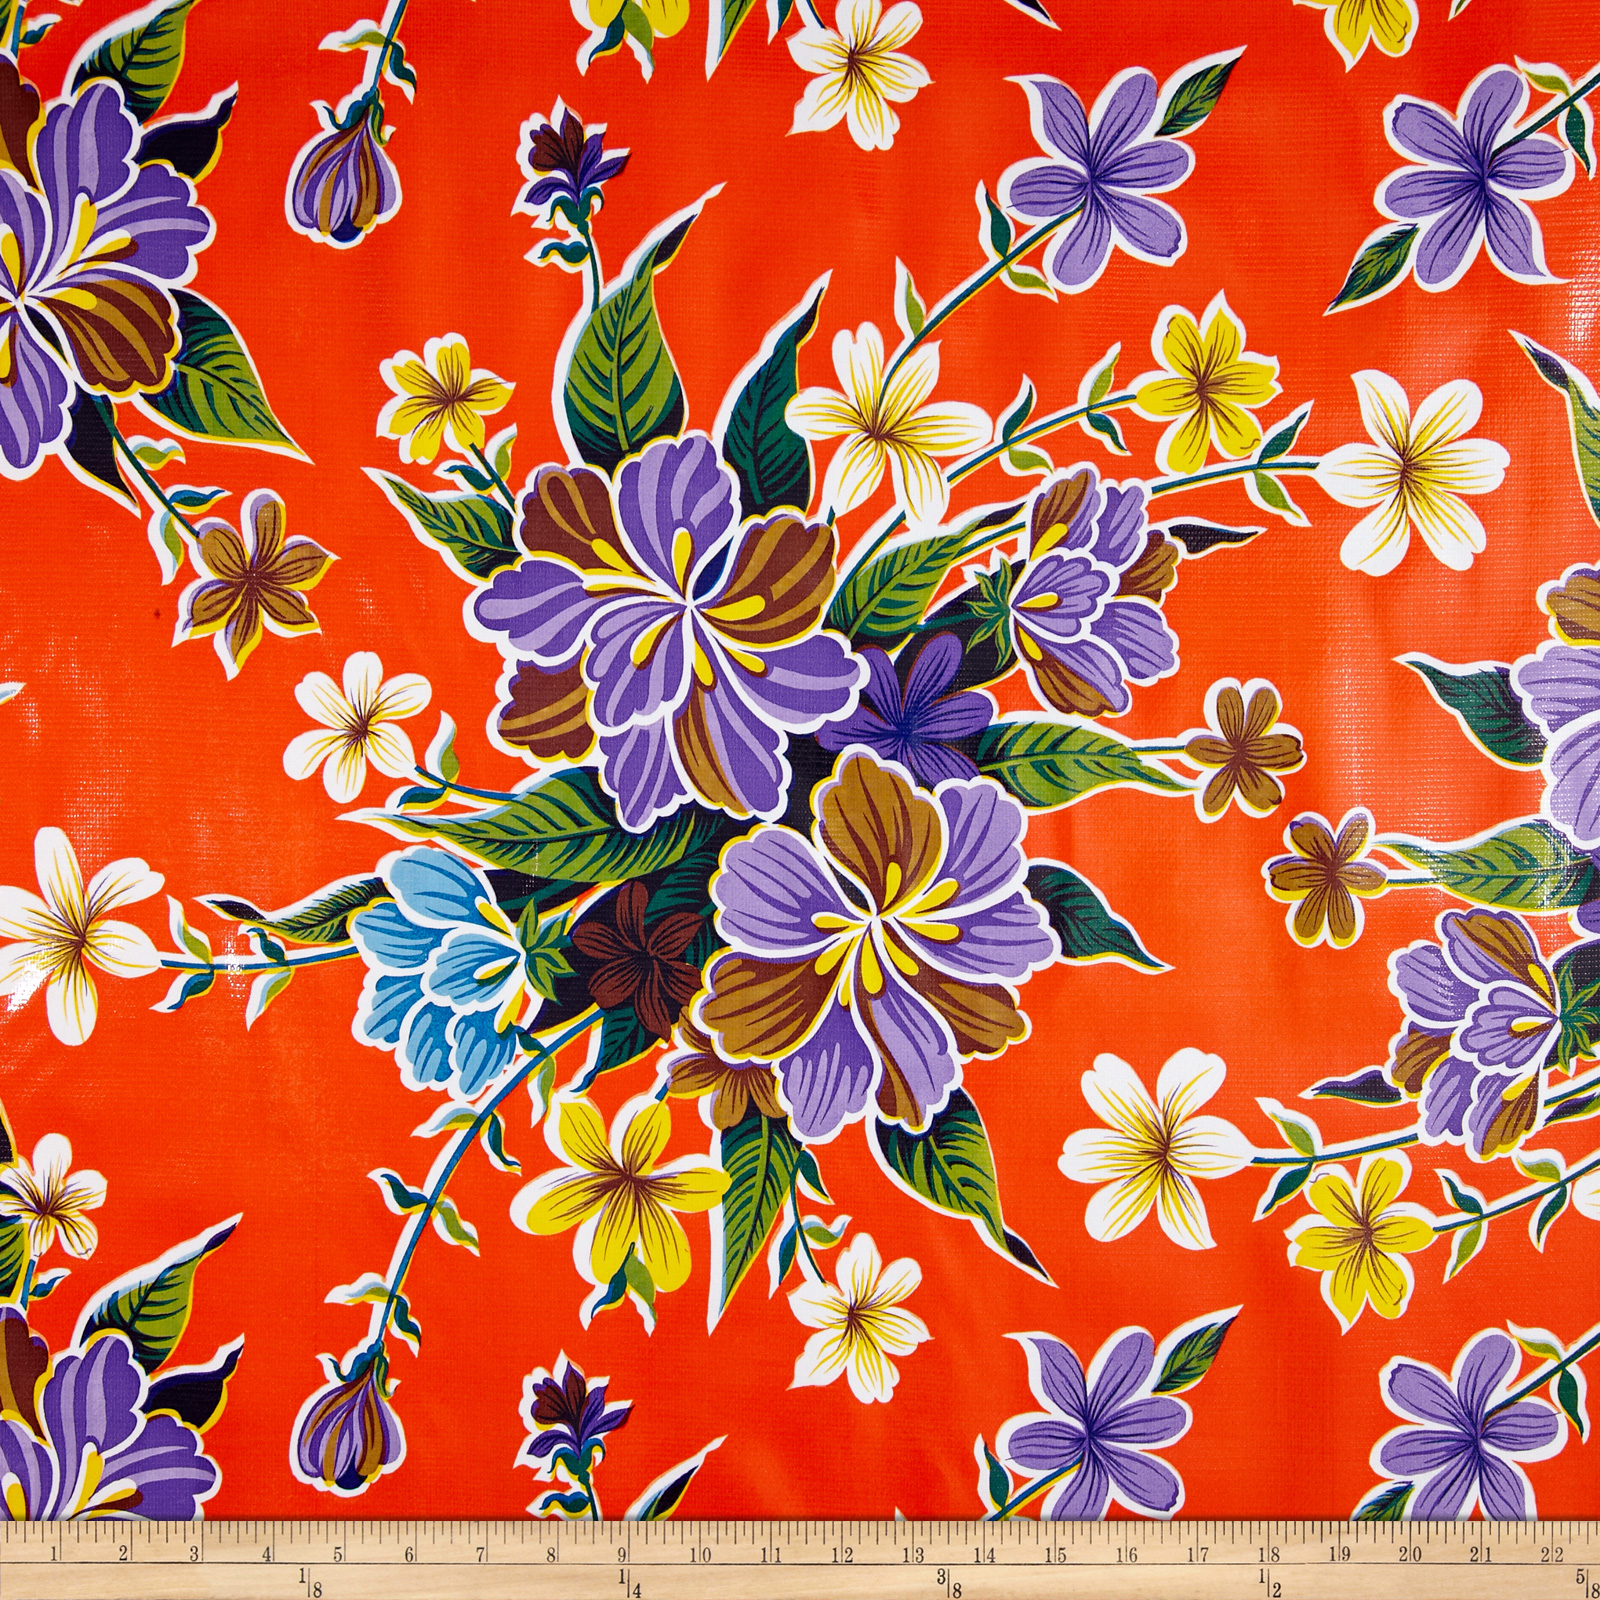 Oilcloth Hibiscus Orange Fabric by Oilcloth International in USA